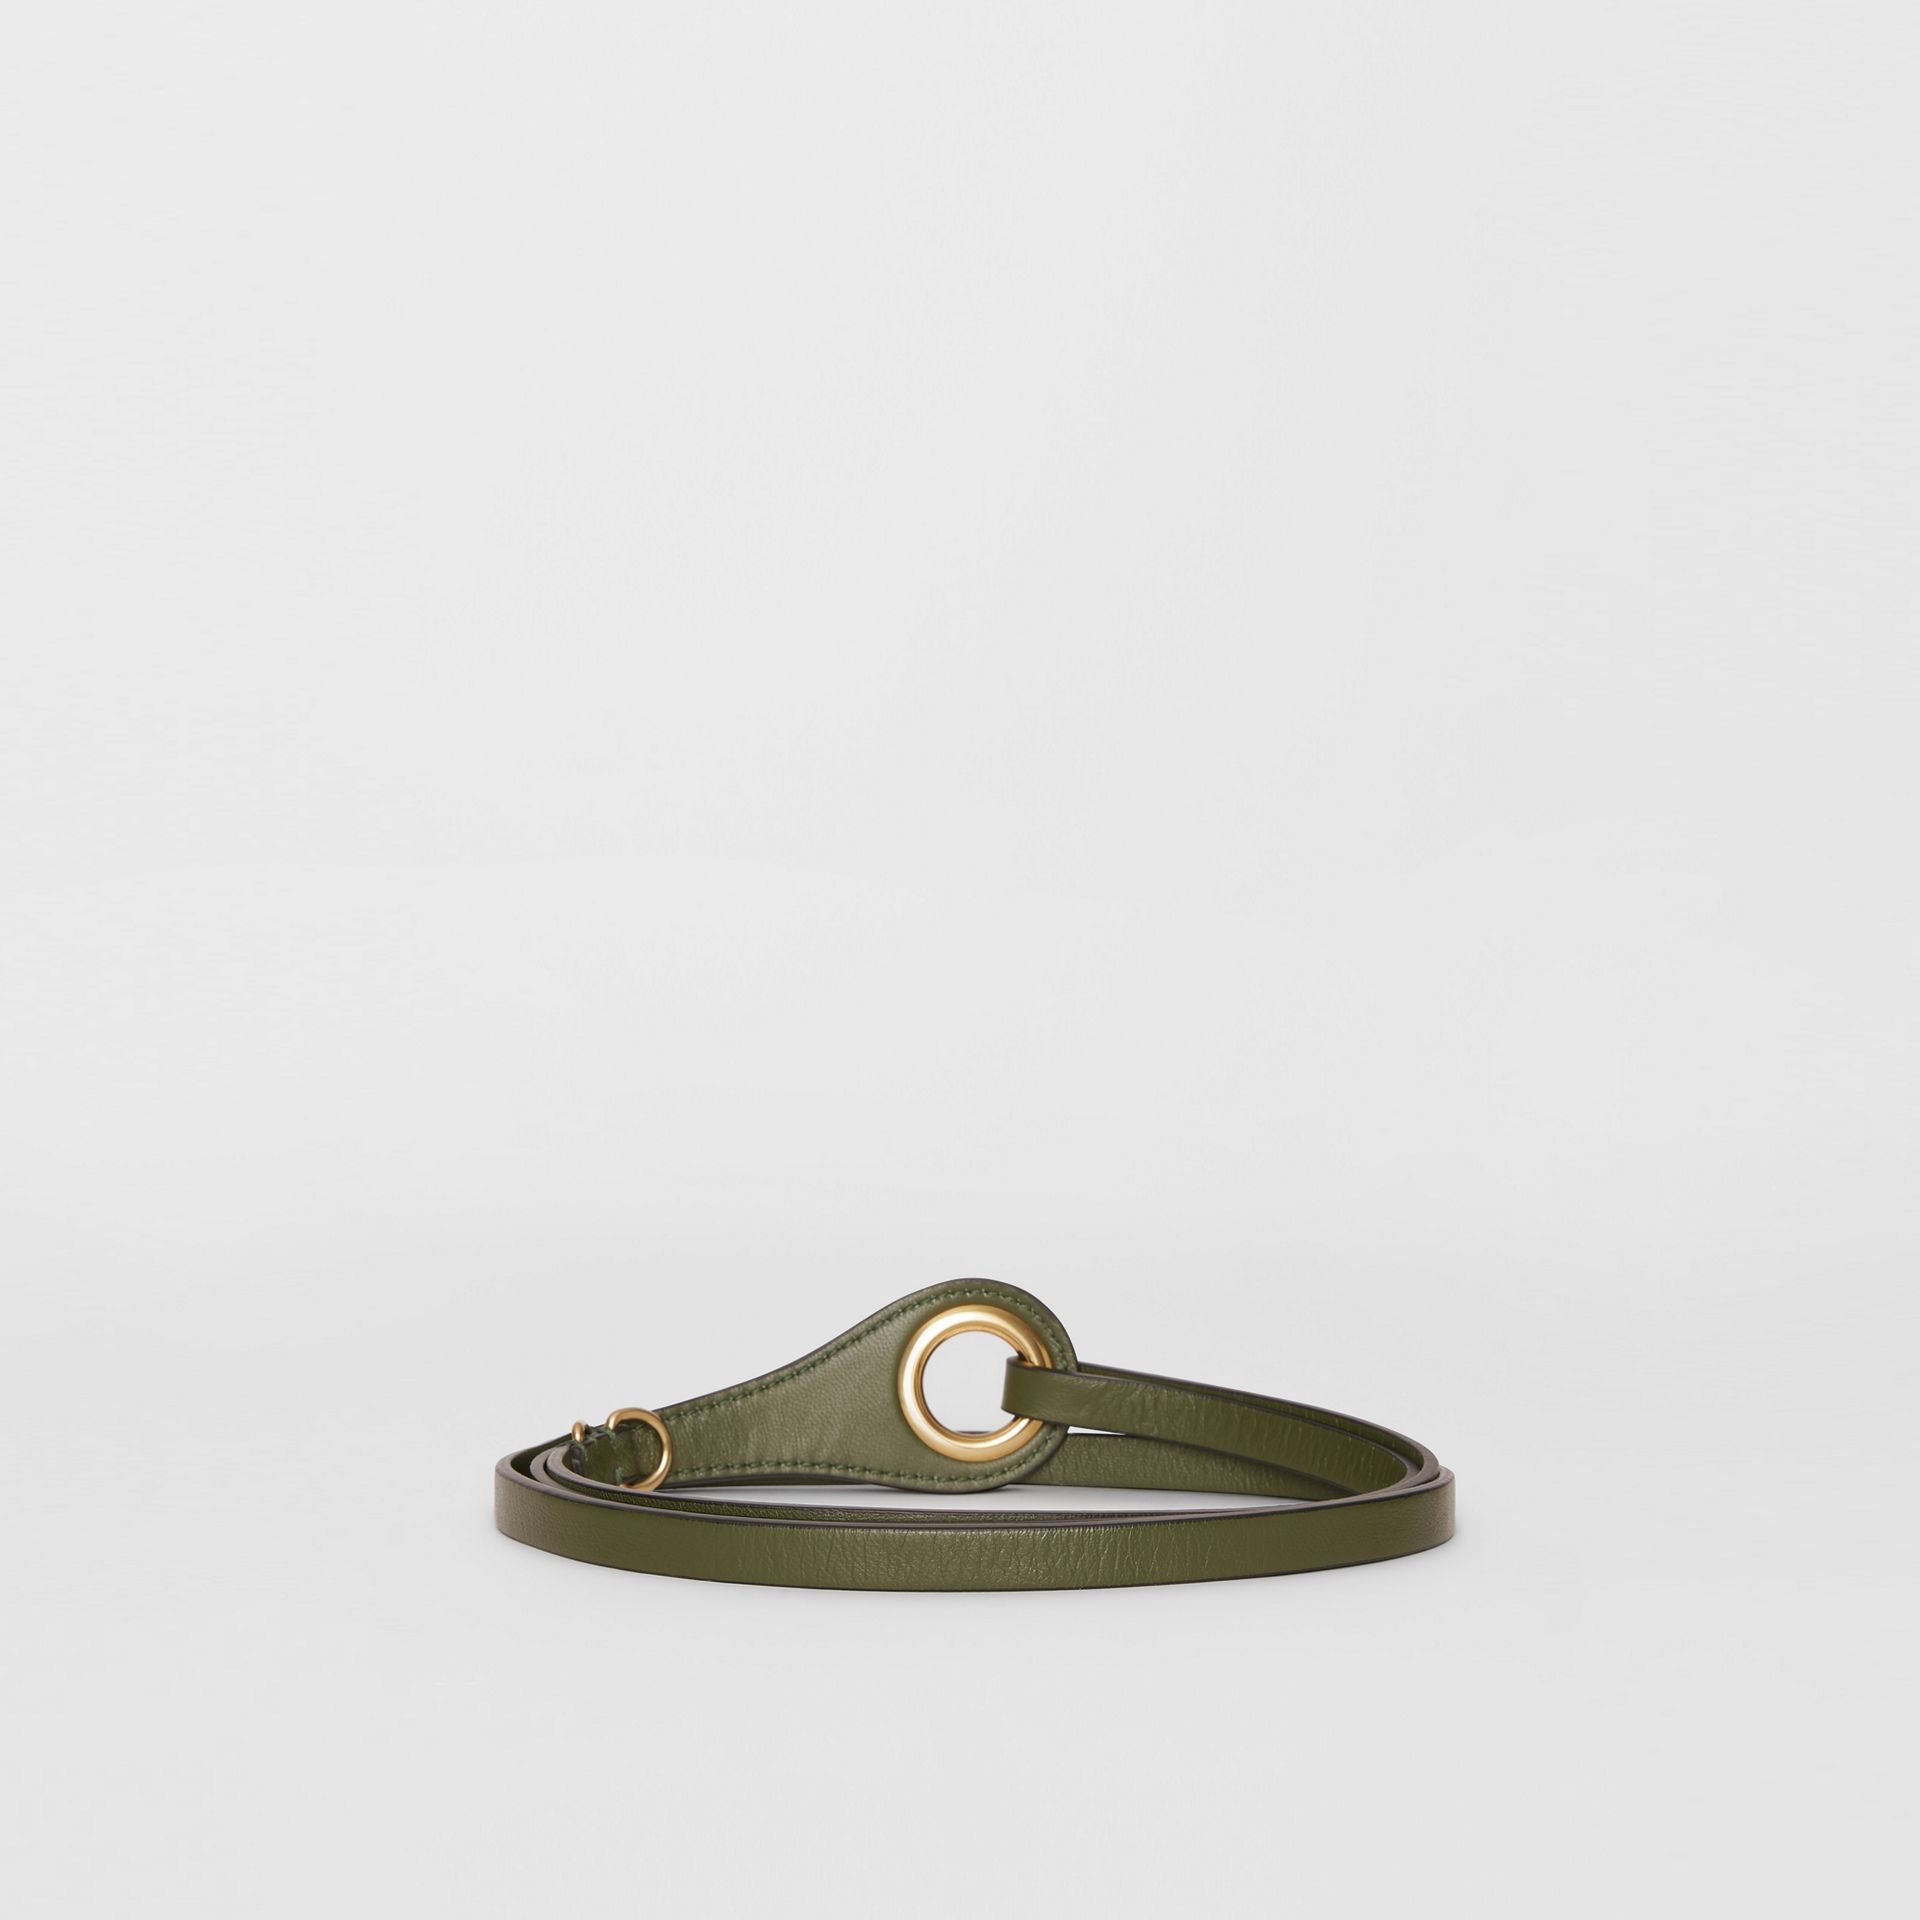 Grommet Detail Lambskin Belt in Dark Olive - Women | Burberry - gallery image 4